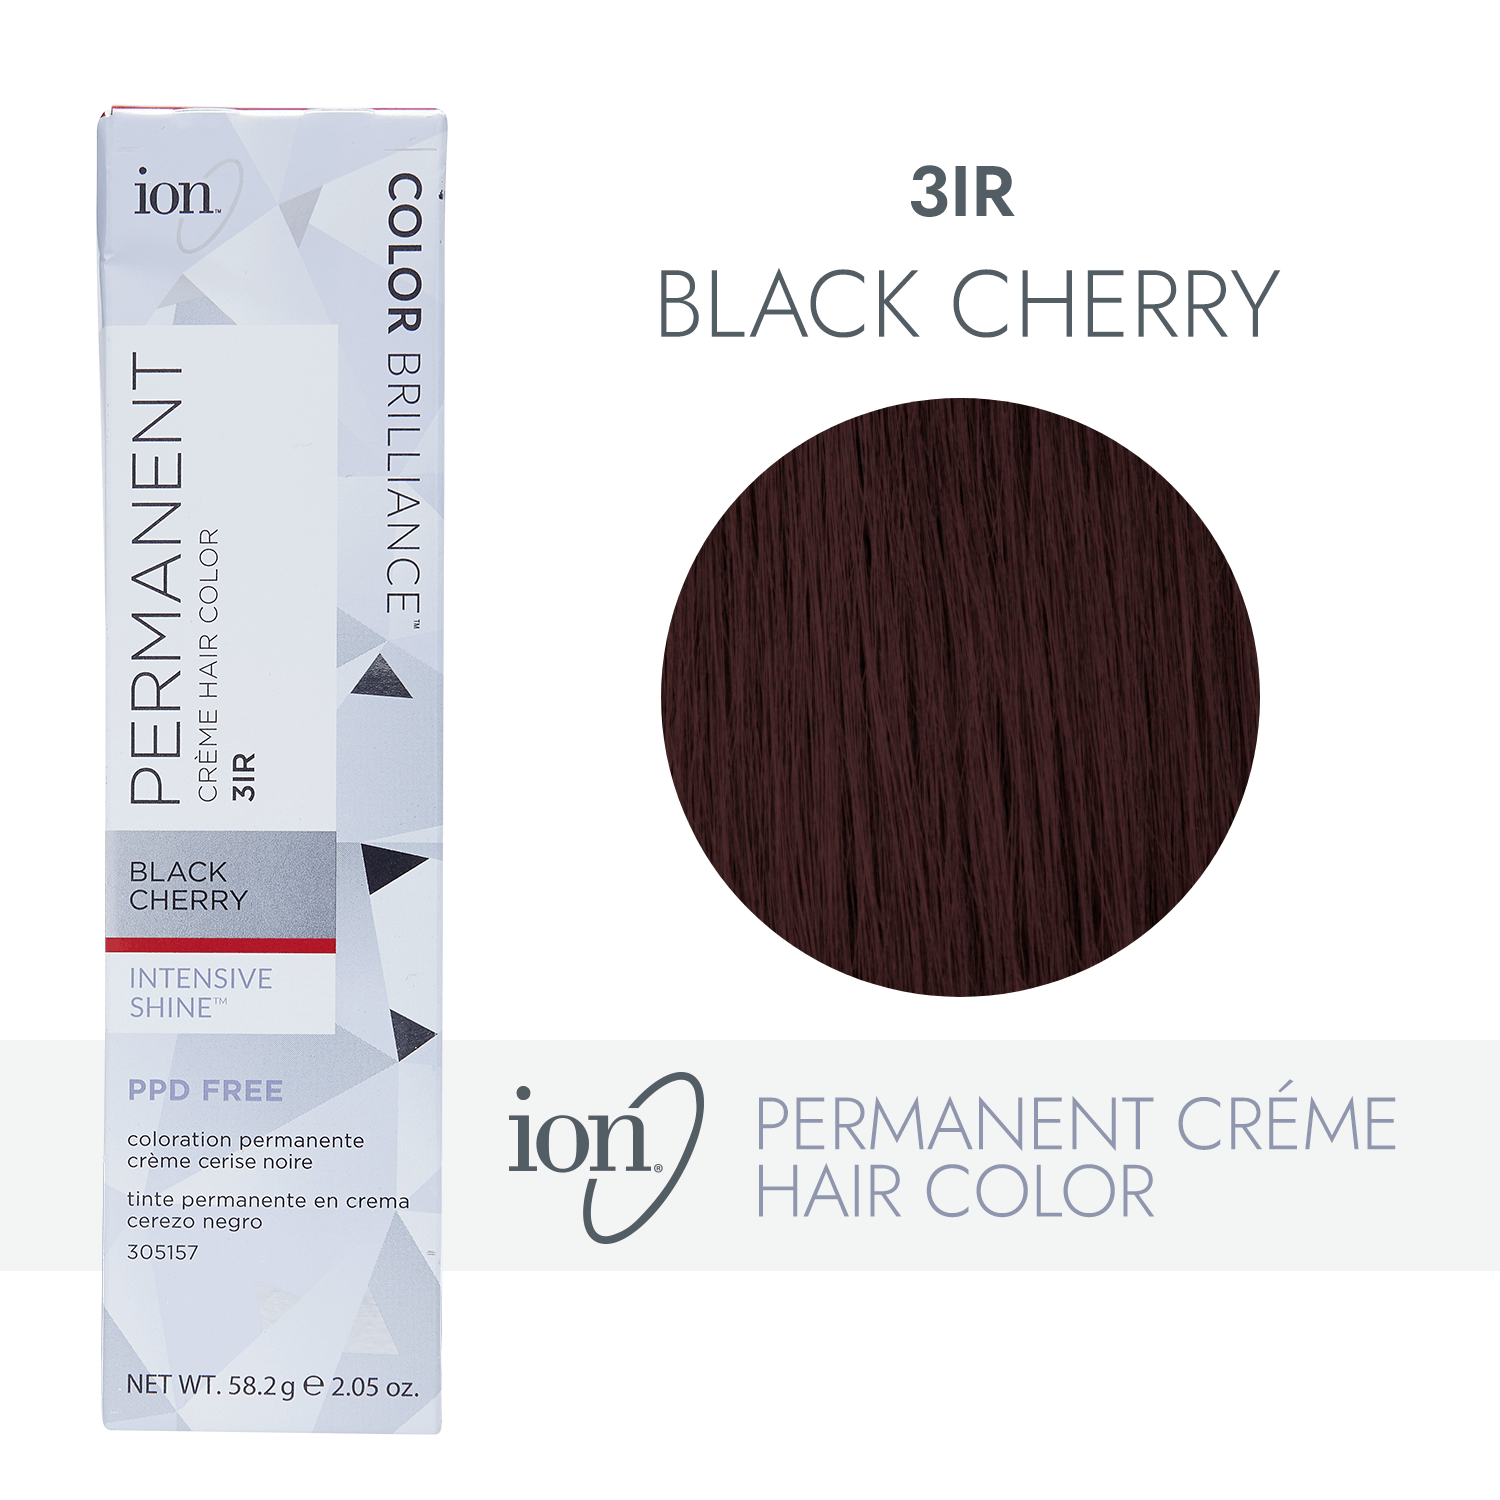 Ion Color Brilliance Master Colorist Series Permanent Creme Hair Color